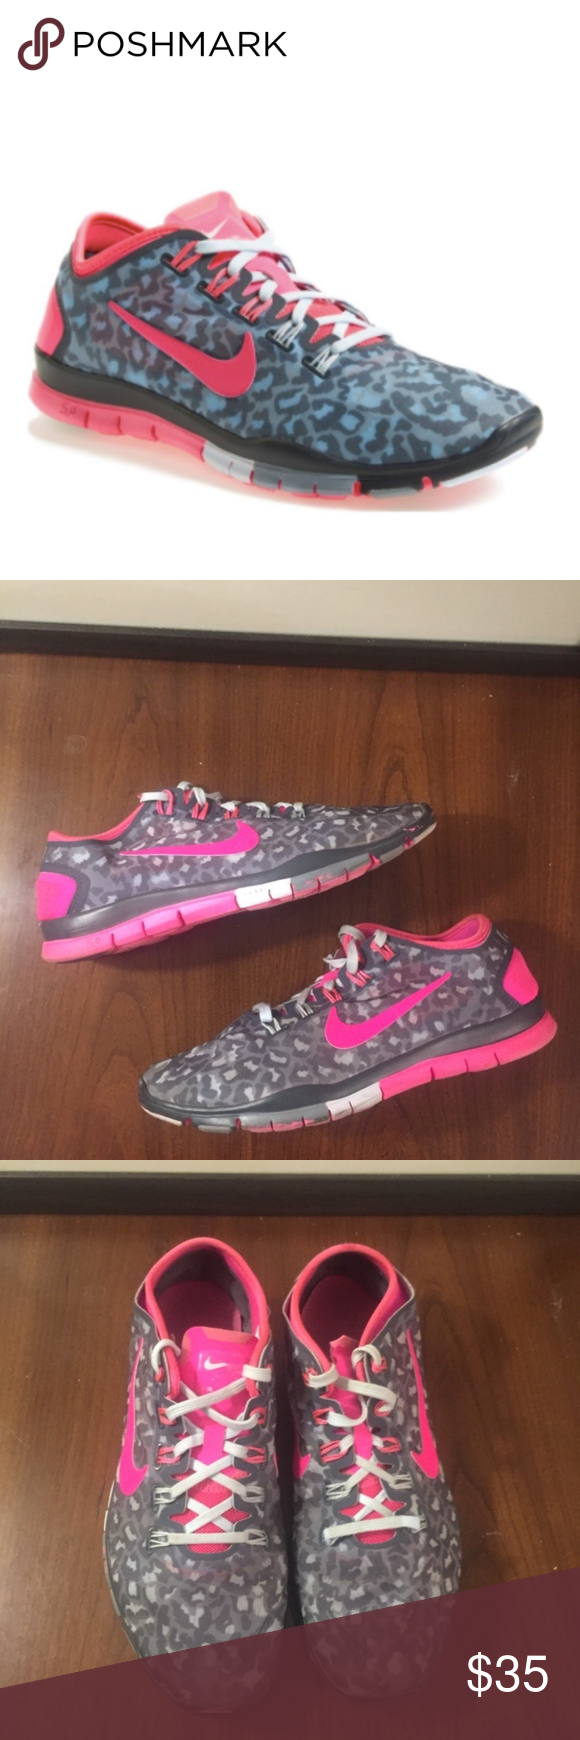 07bc4d26e4a9 ... discount womens nike free tr connect 2 running sneaker 06a36 c4416